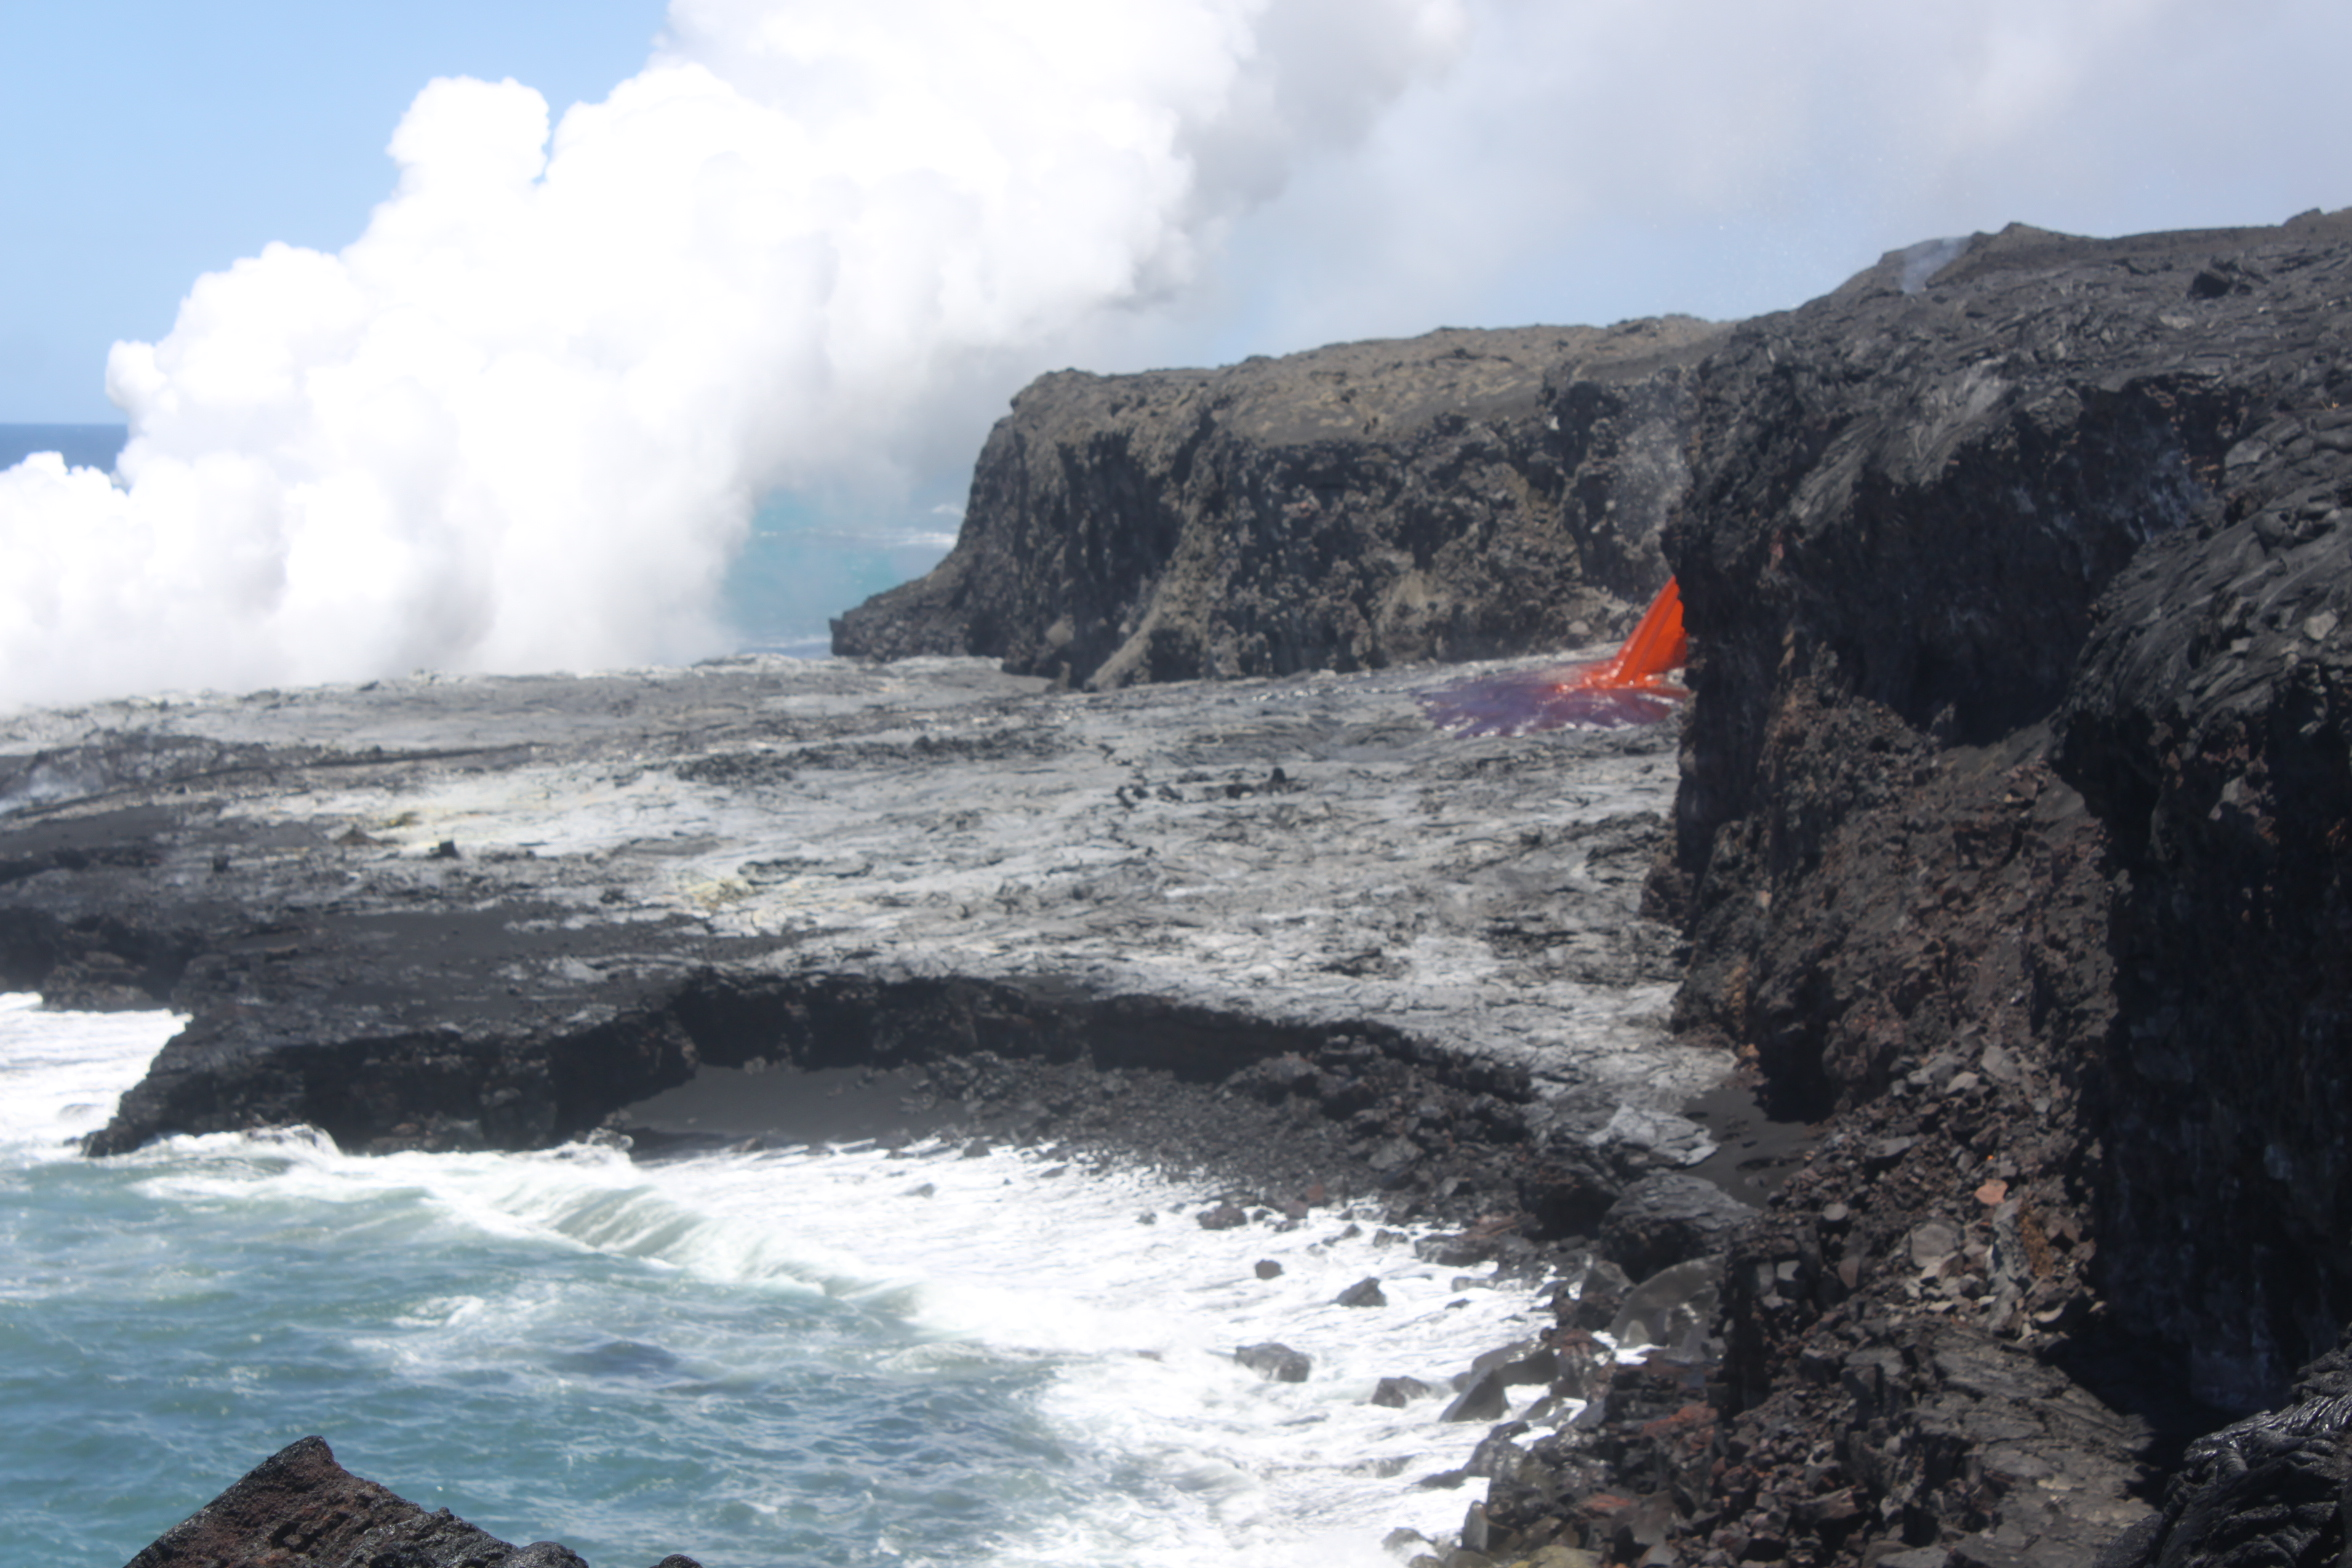 https://volcanoes.usgs.gov/observatories/hvo/multimedia_uploads/multimediaFile-1706.jpg